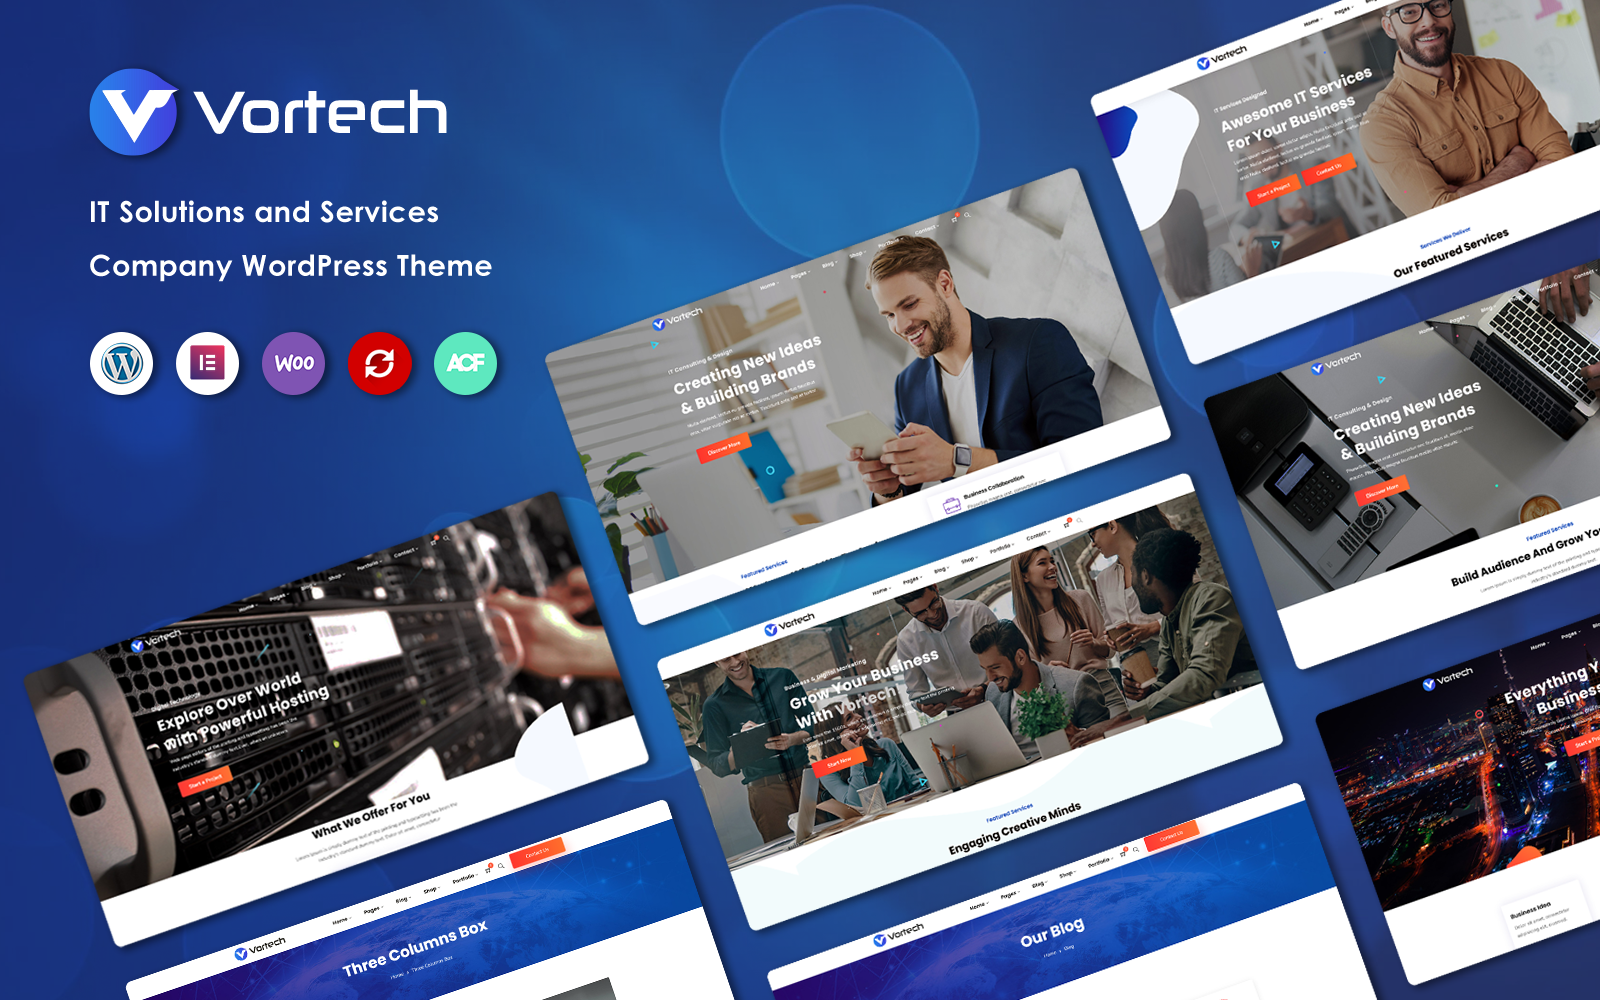 Vortech - IT Solutions and Services Company WordPress Theme